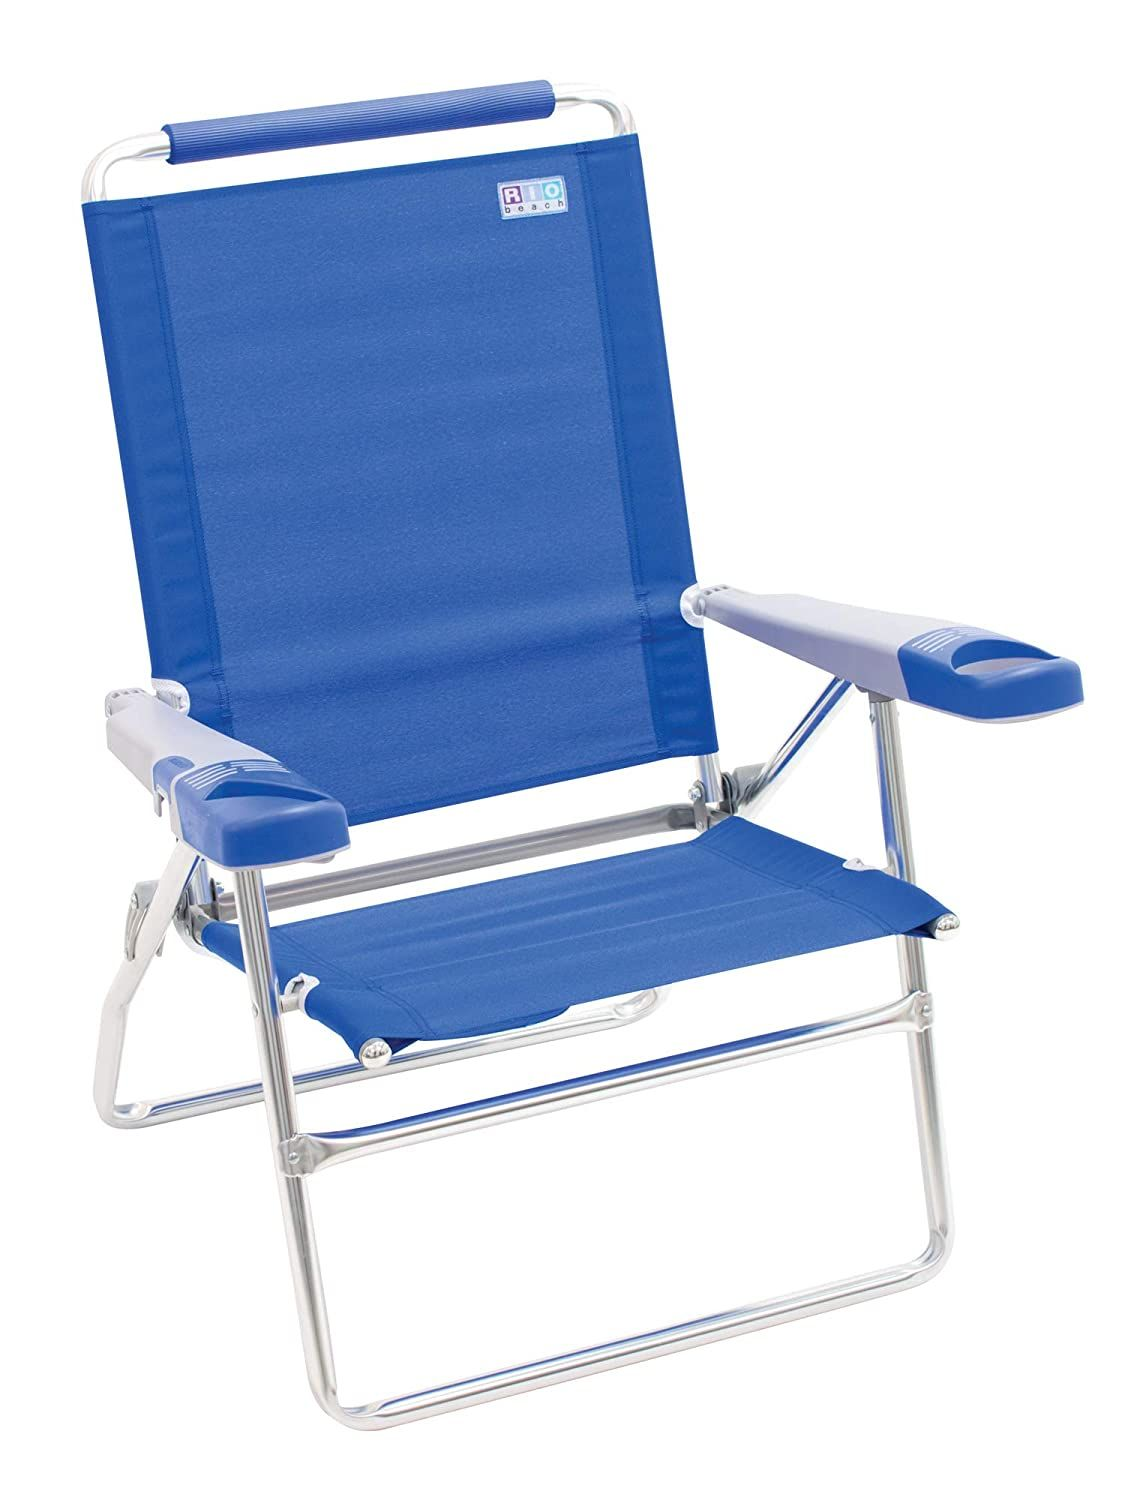 Rio Beach 15 Extended Height 4 Position Folding Beach Chair Light Blue Want To Know More Click On Folding Beach Chair Beach Chairs Backpack Beach Chair